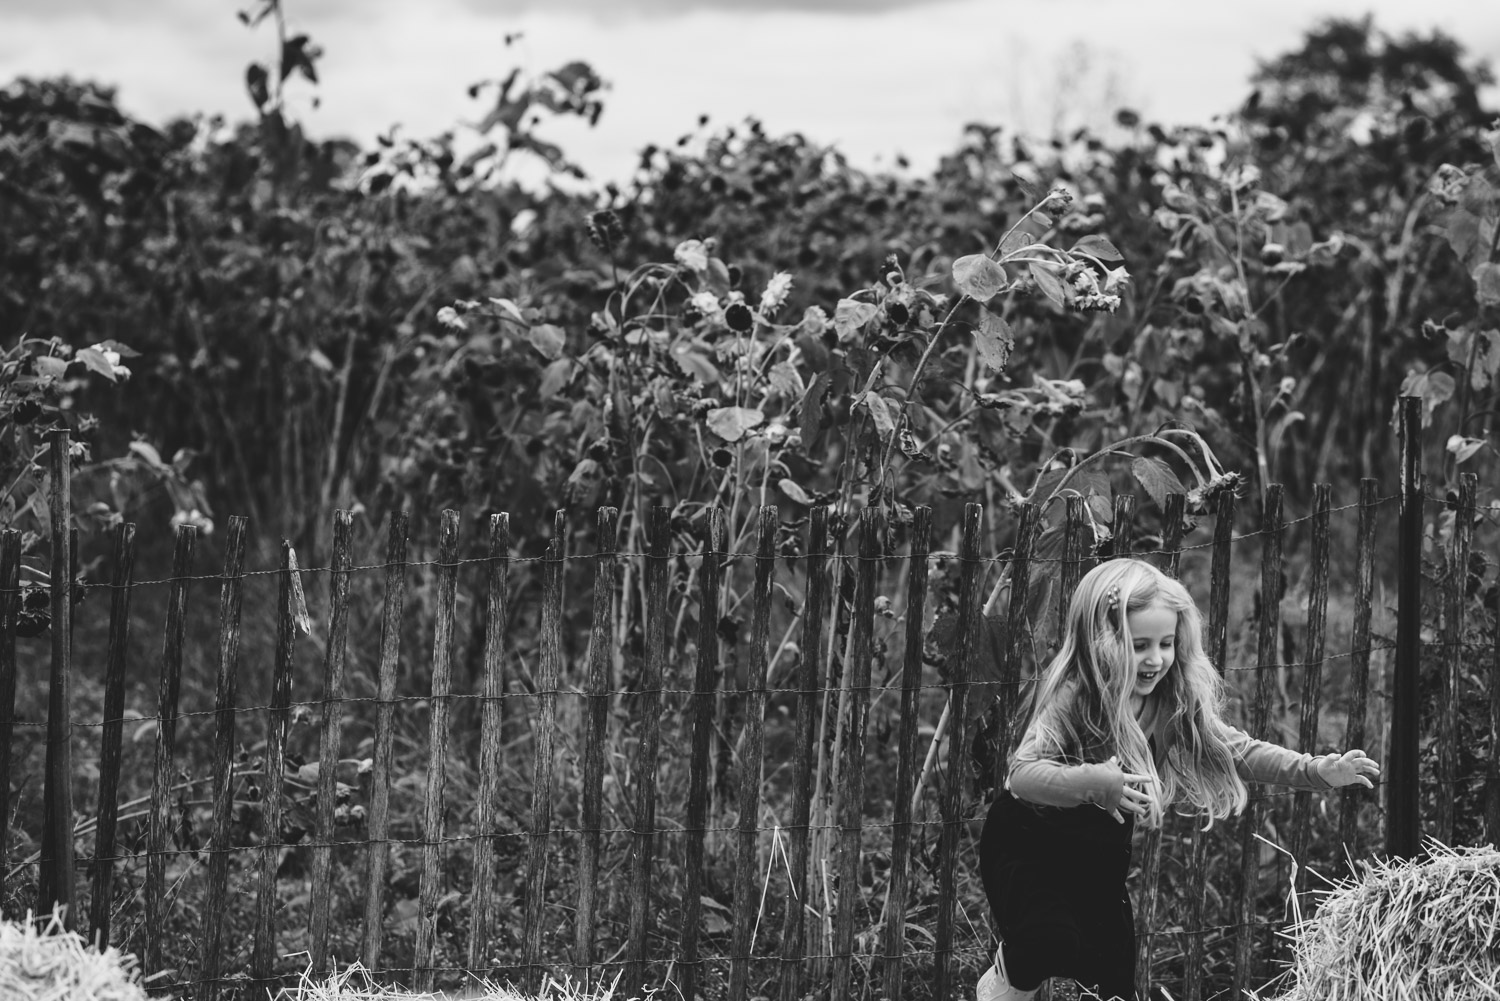 Girl climbing over hay bales with corn stalks behind her.